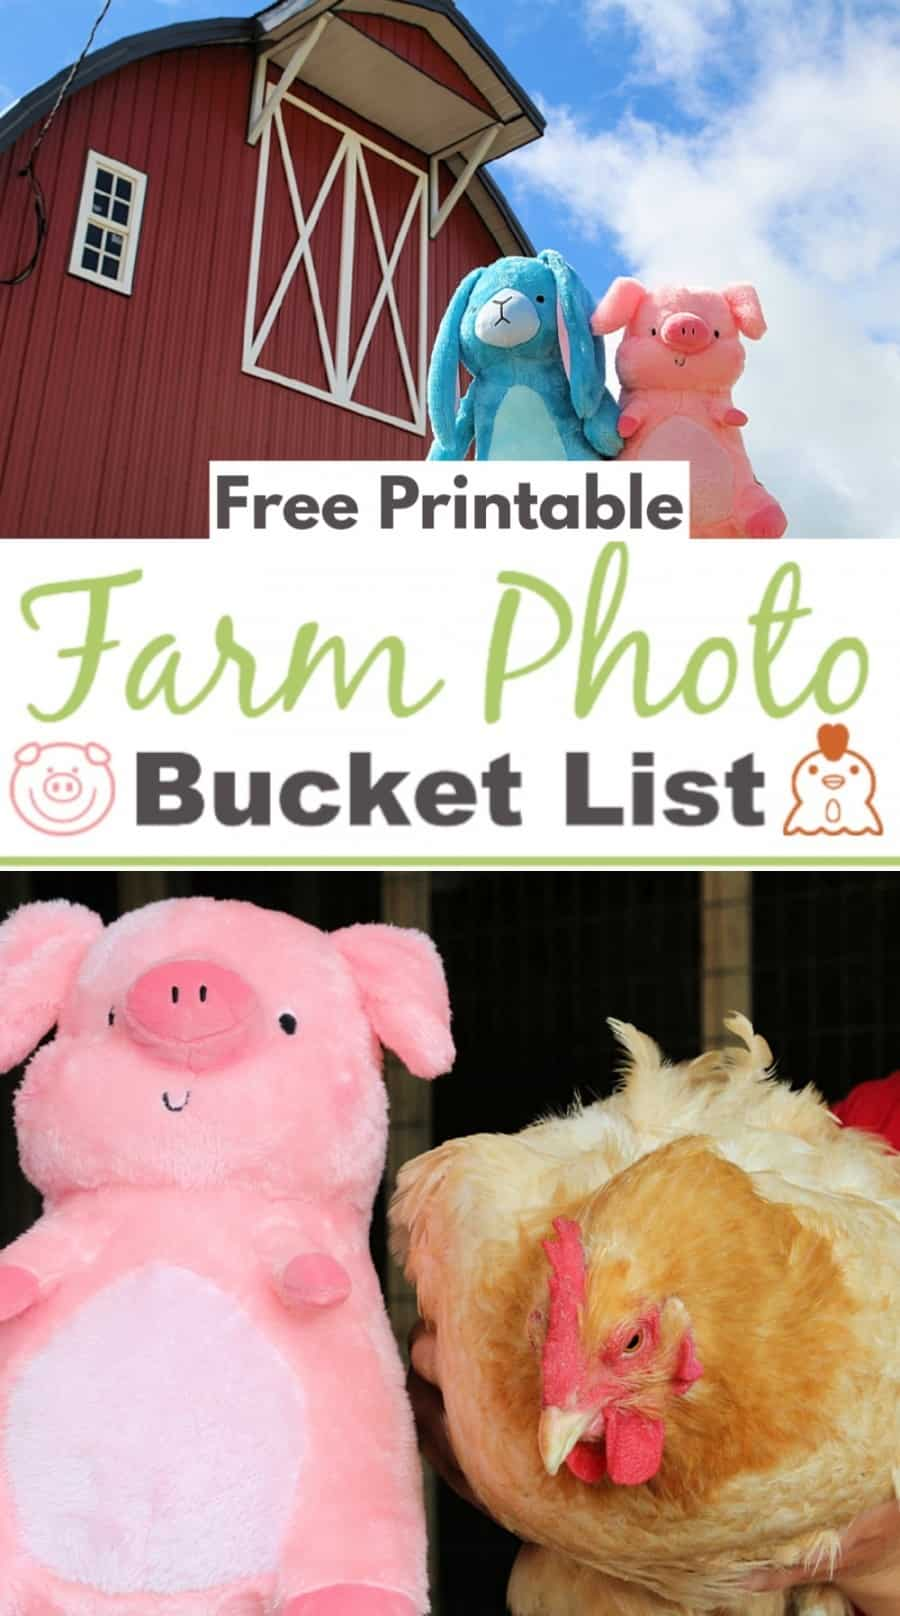 Free Printable Farm Photo Bucket List + Hamilton & Eleanor On Kickstarter